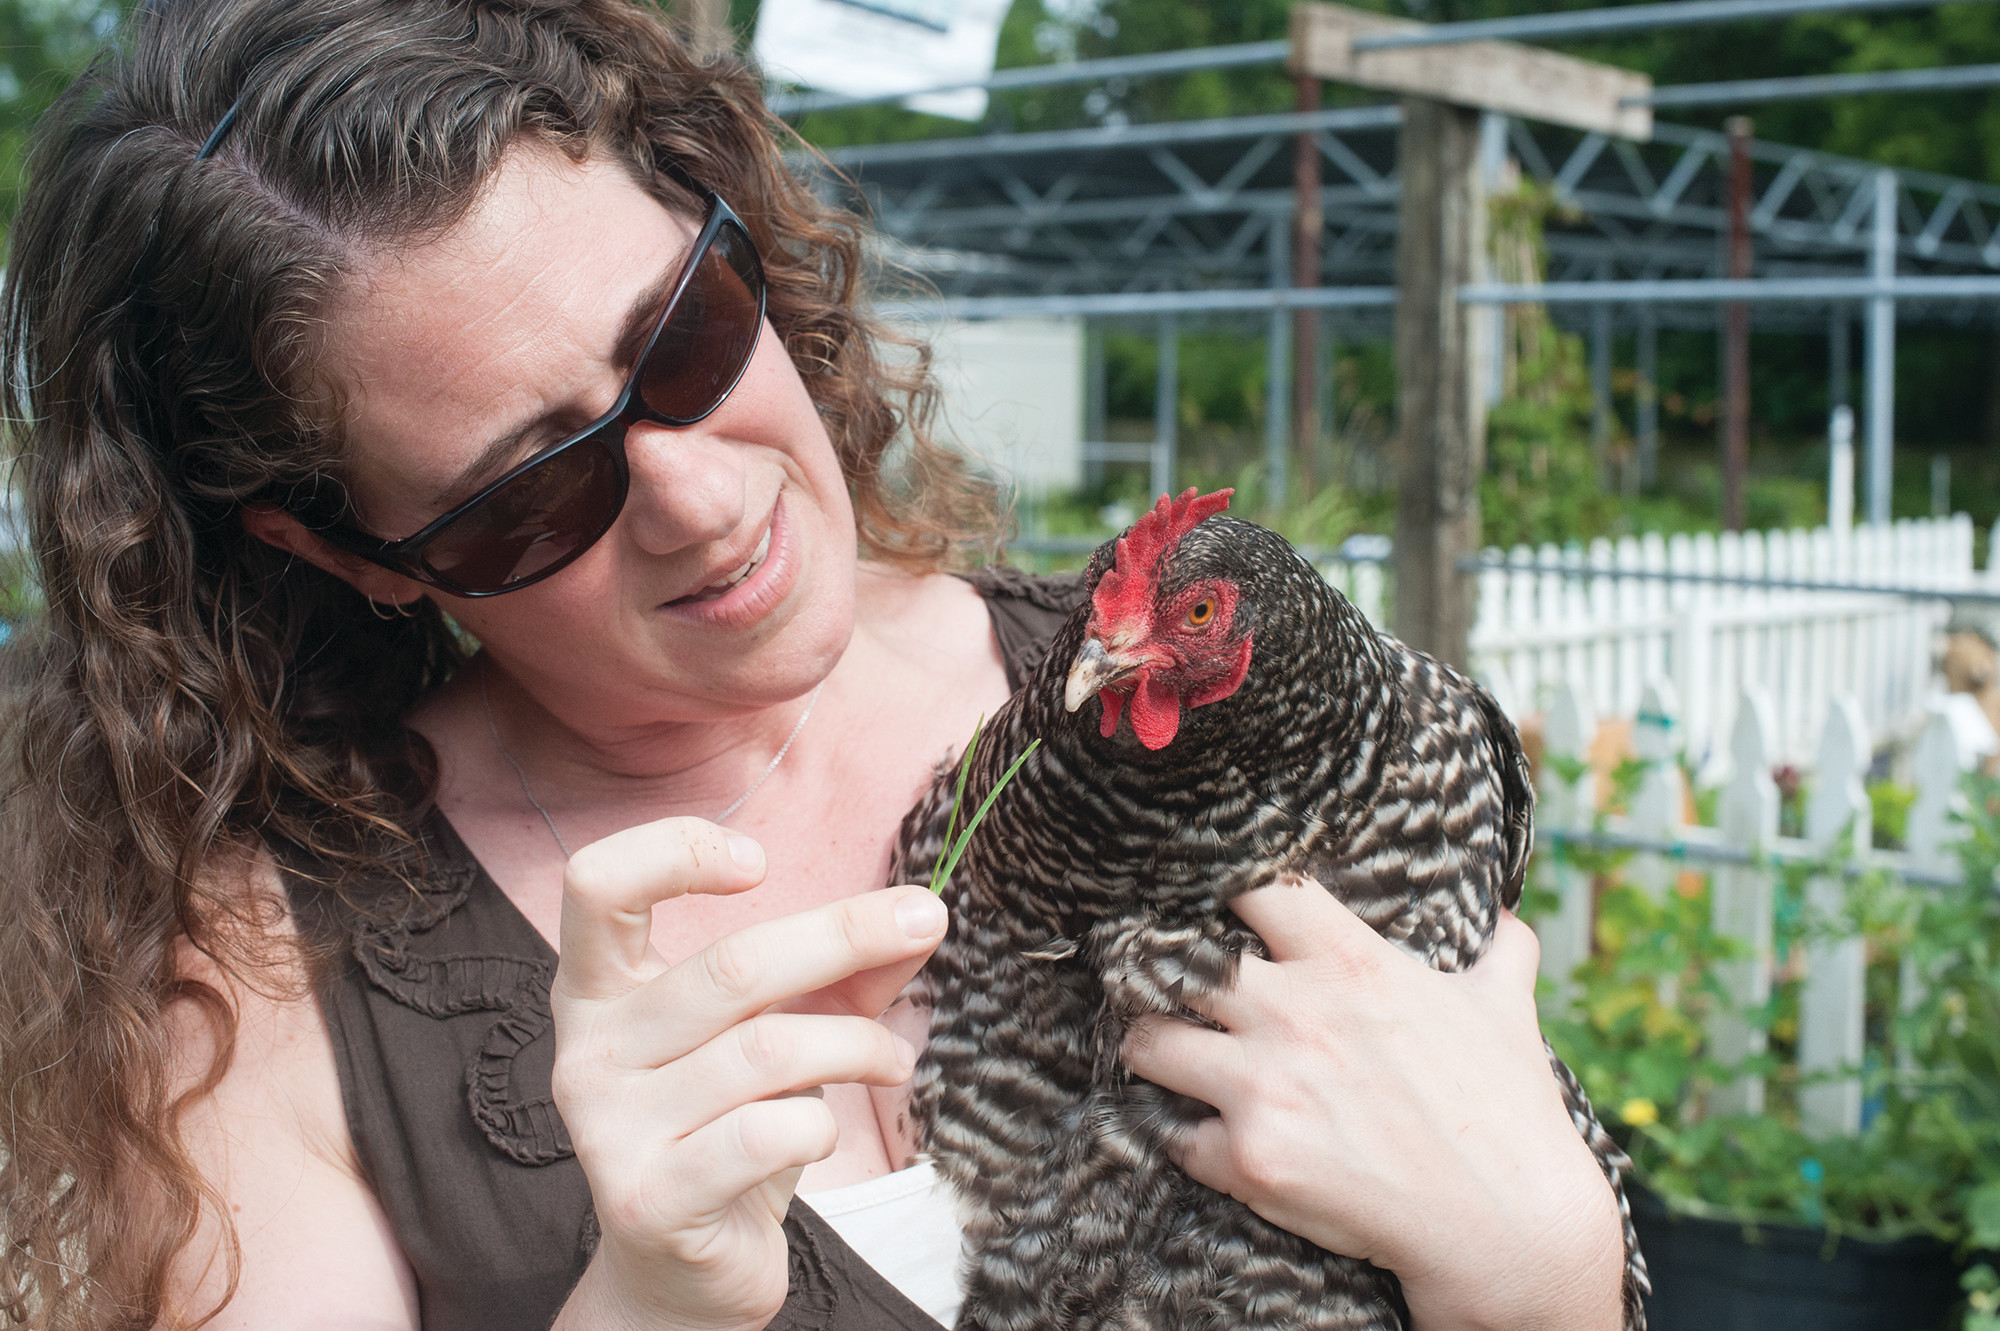 Lauren Trad feeds grass to a Plymouth Barred Rock named Pepper.